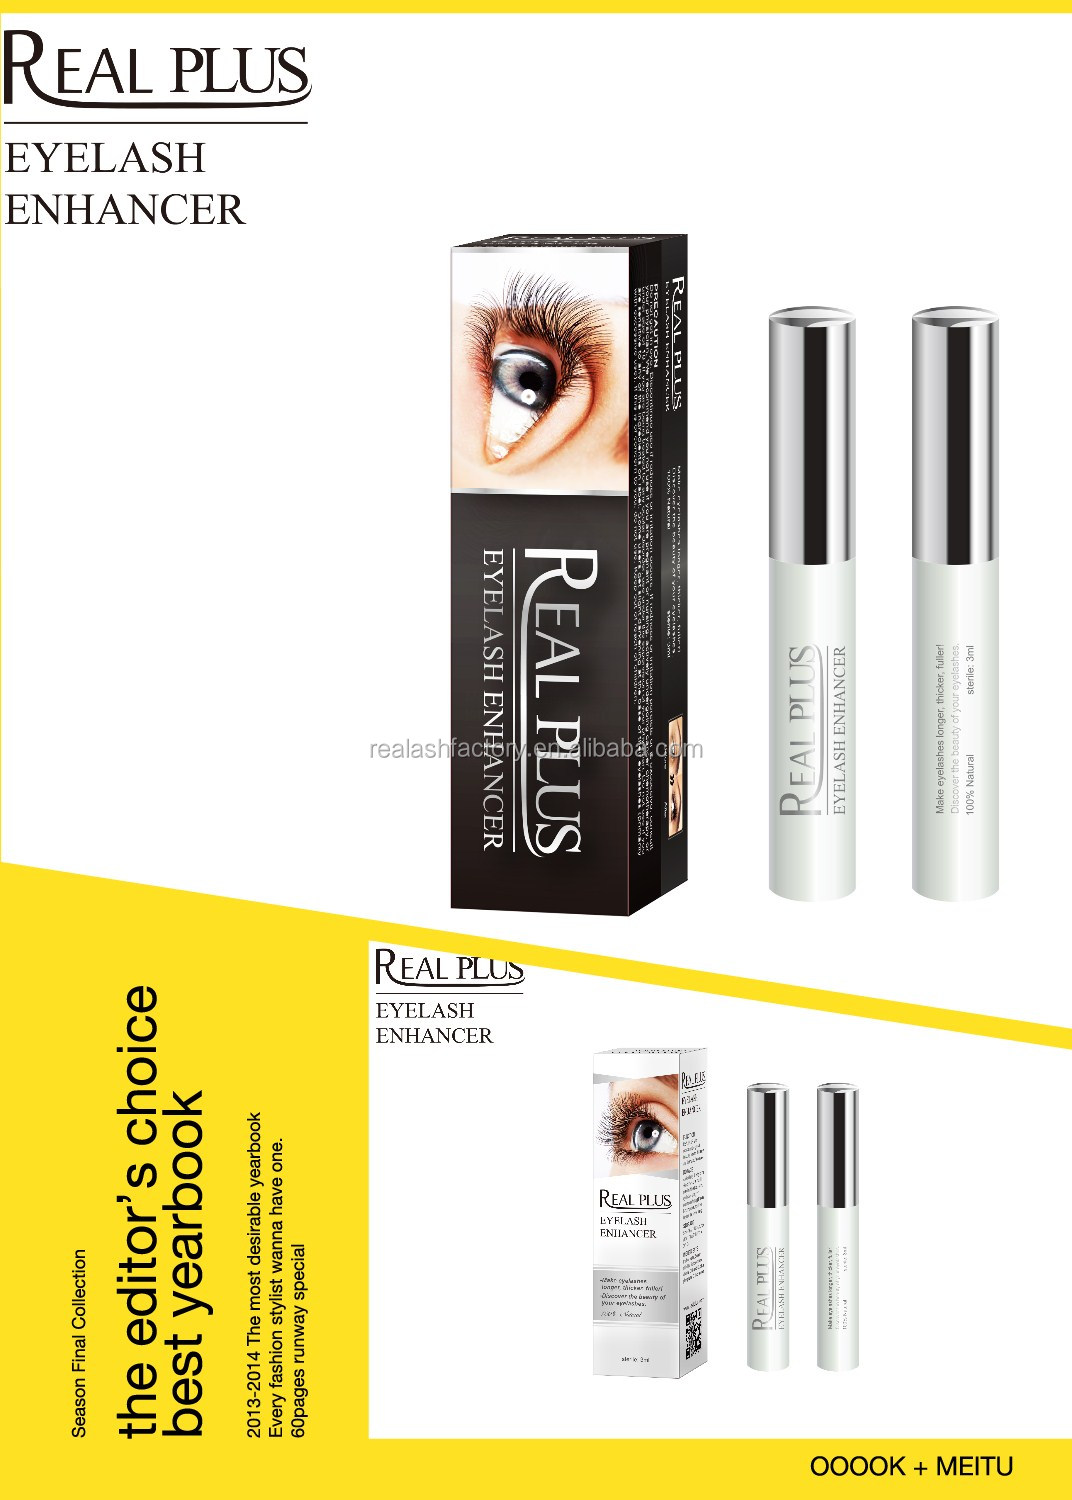 We offer eyelash enhancer serum in bulk - 1000ml as MOQ ;REAL PLUS EYELASH EXTENION !!BLING ;WOW